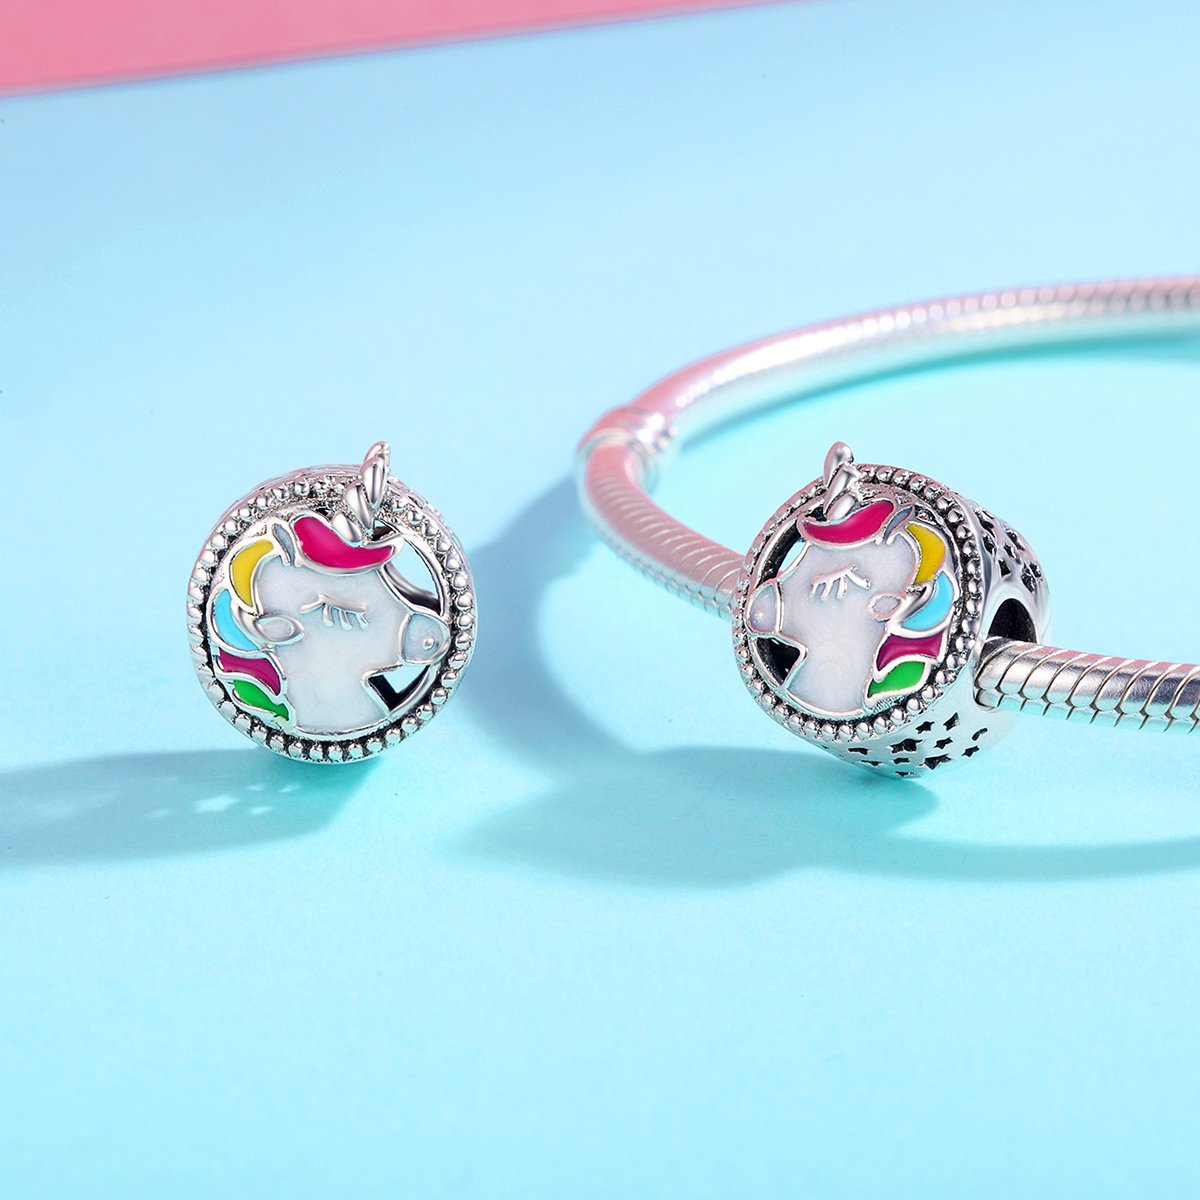 BAMOER 925 Sterling Silver Unicorn Charm Bead Enamel Charm Fit Bracelet Necklace Perfect Jewelry For Women Girls by BAMOER (Image #5)